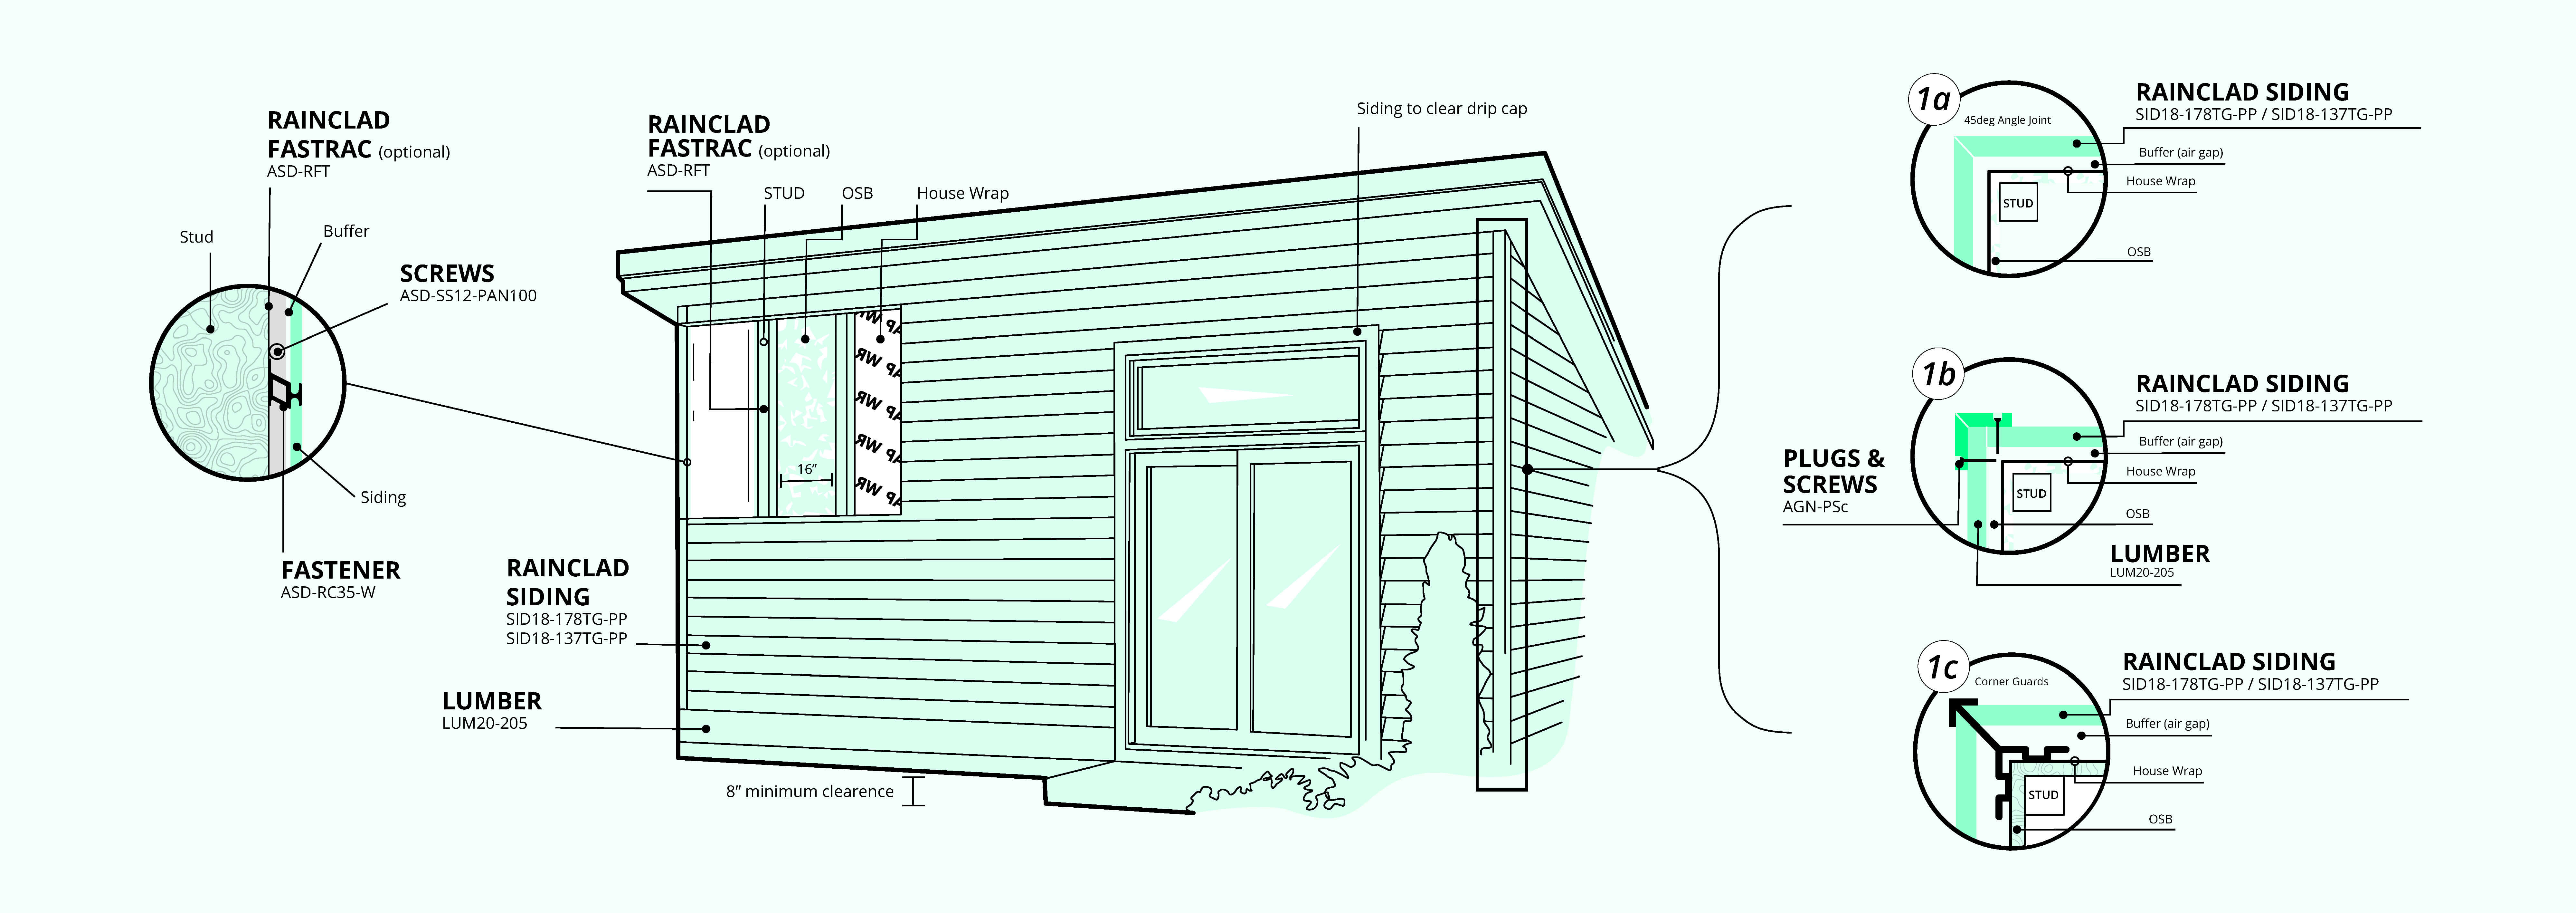 rainclad siding layout and how to guide